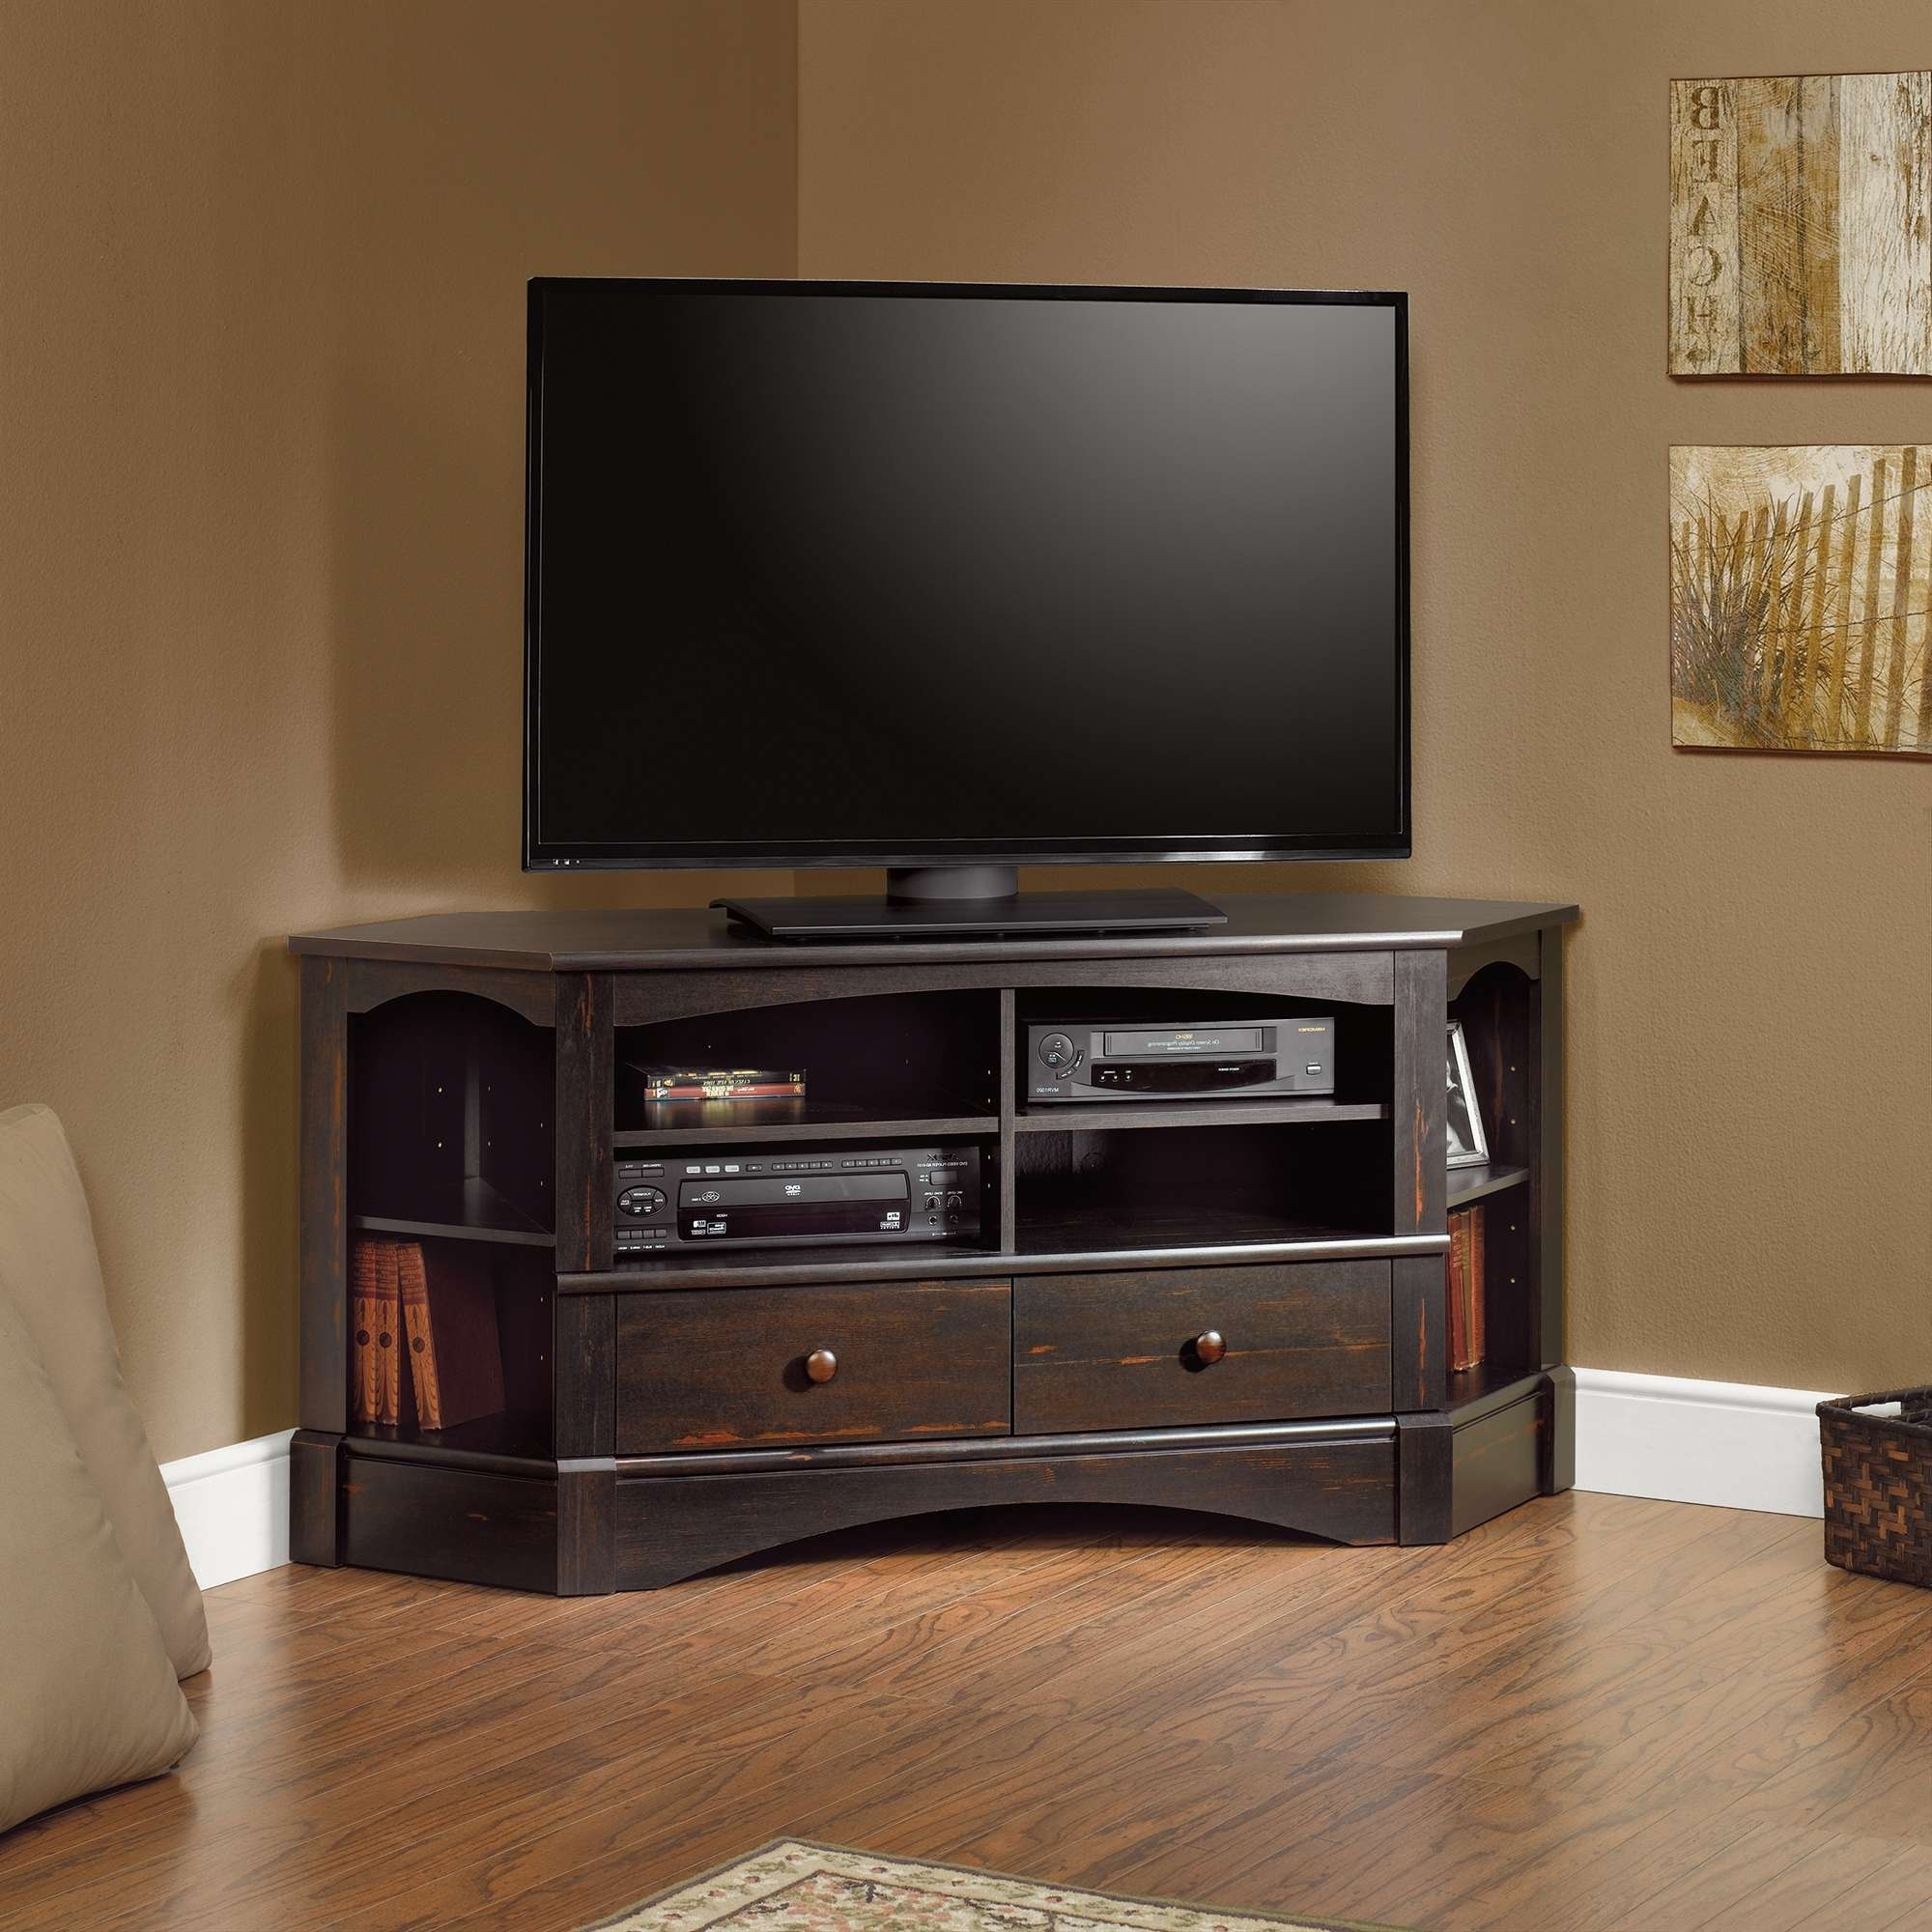 Harbor View | Corner Entertainment Credenza | 402902 | Sauder Within Painted Corner Tv Cabinets (View 8 of 20)